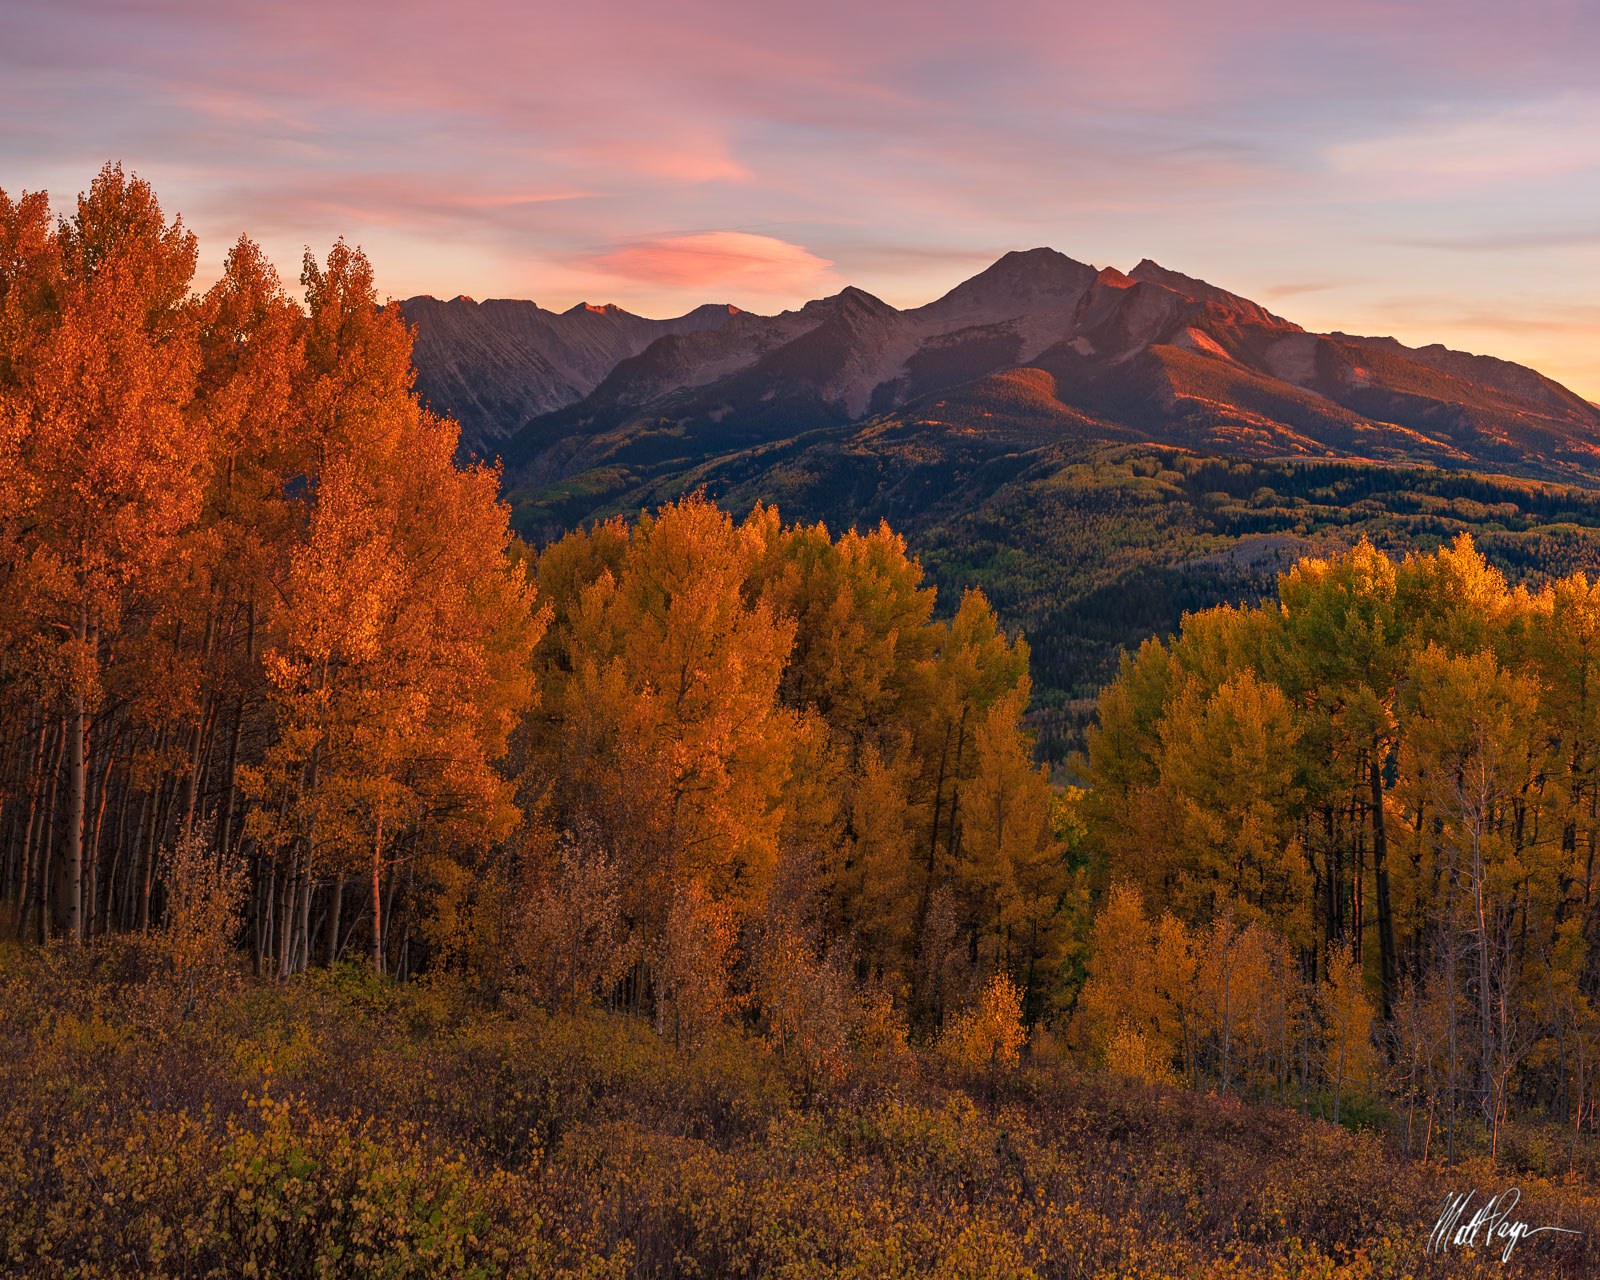 McClure Pass, Forest, fall color, Chair Mountain, aspen, landscape, lenticular clouds, mountains, glow, West Elk Mountains, photo